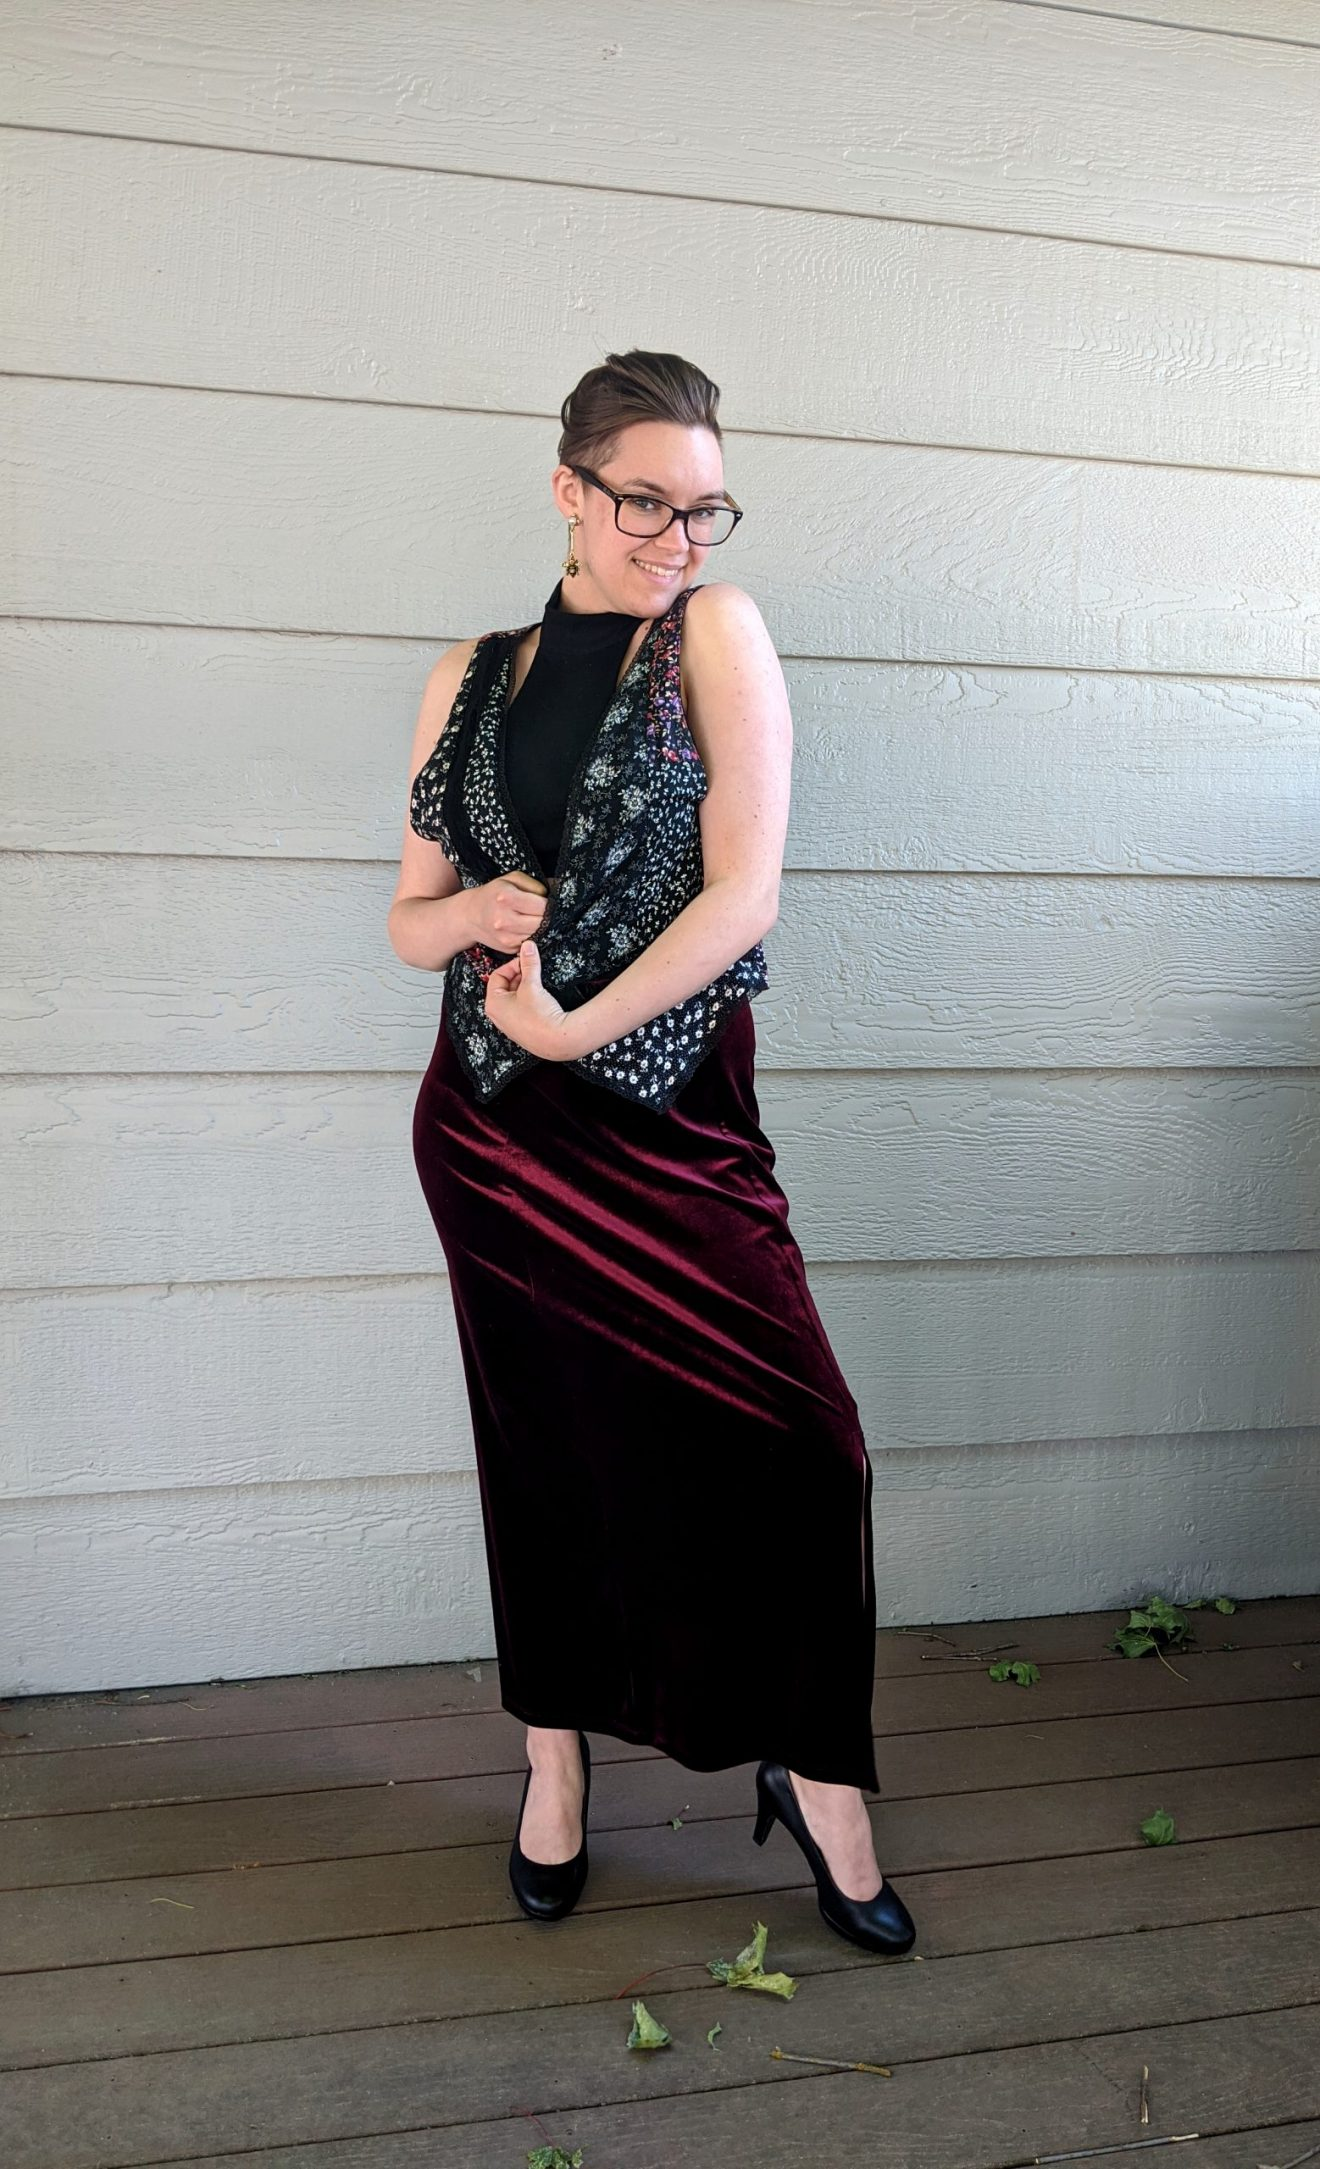 I Feared Waking Up Alissa Ackerman Story Behind The Cloth fashion blog vintage antique witchy bohemian outfit 7 scaled